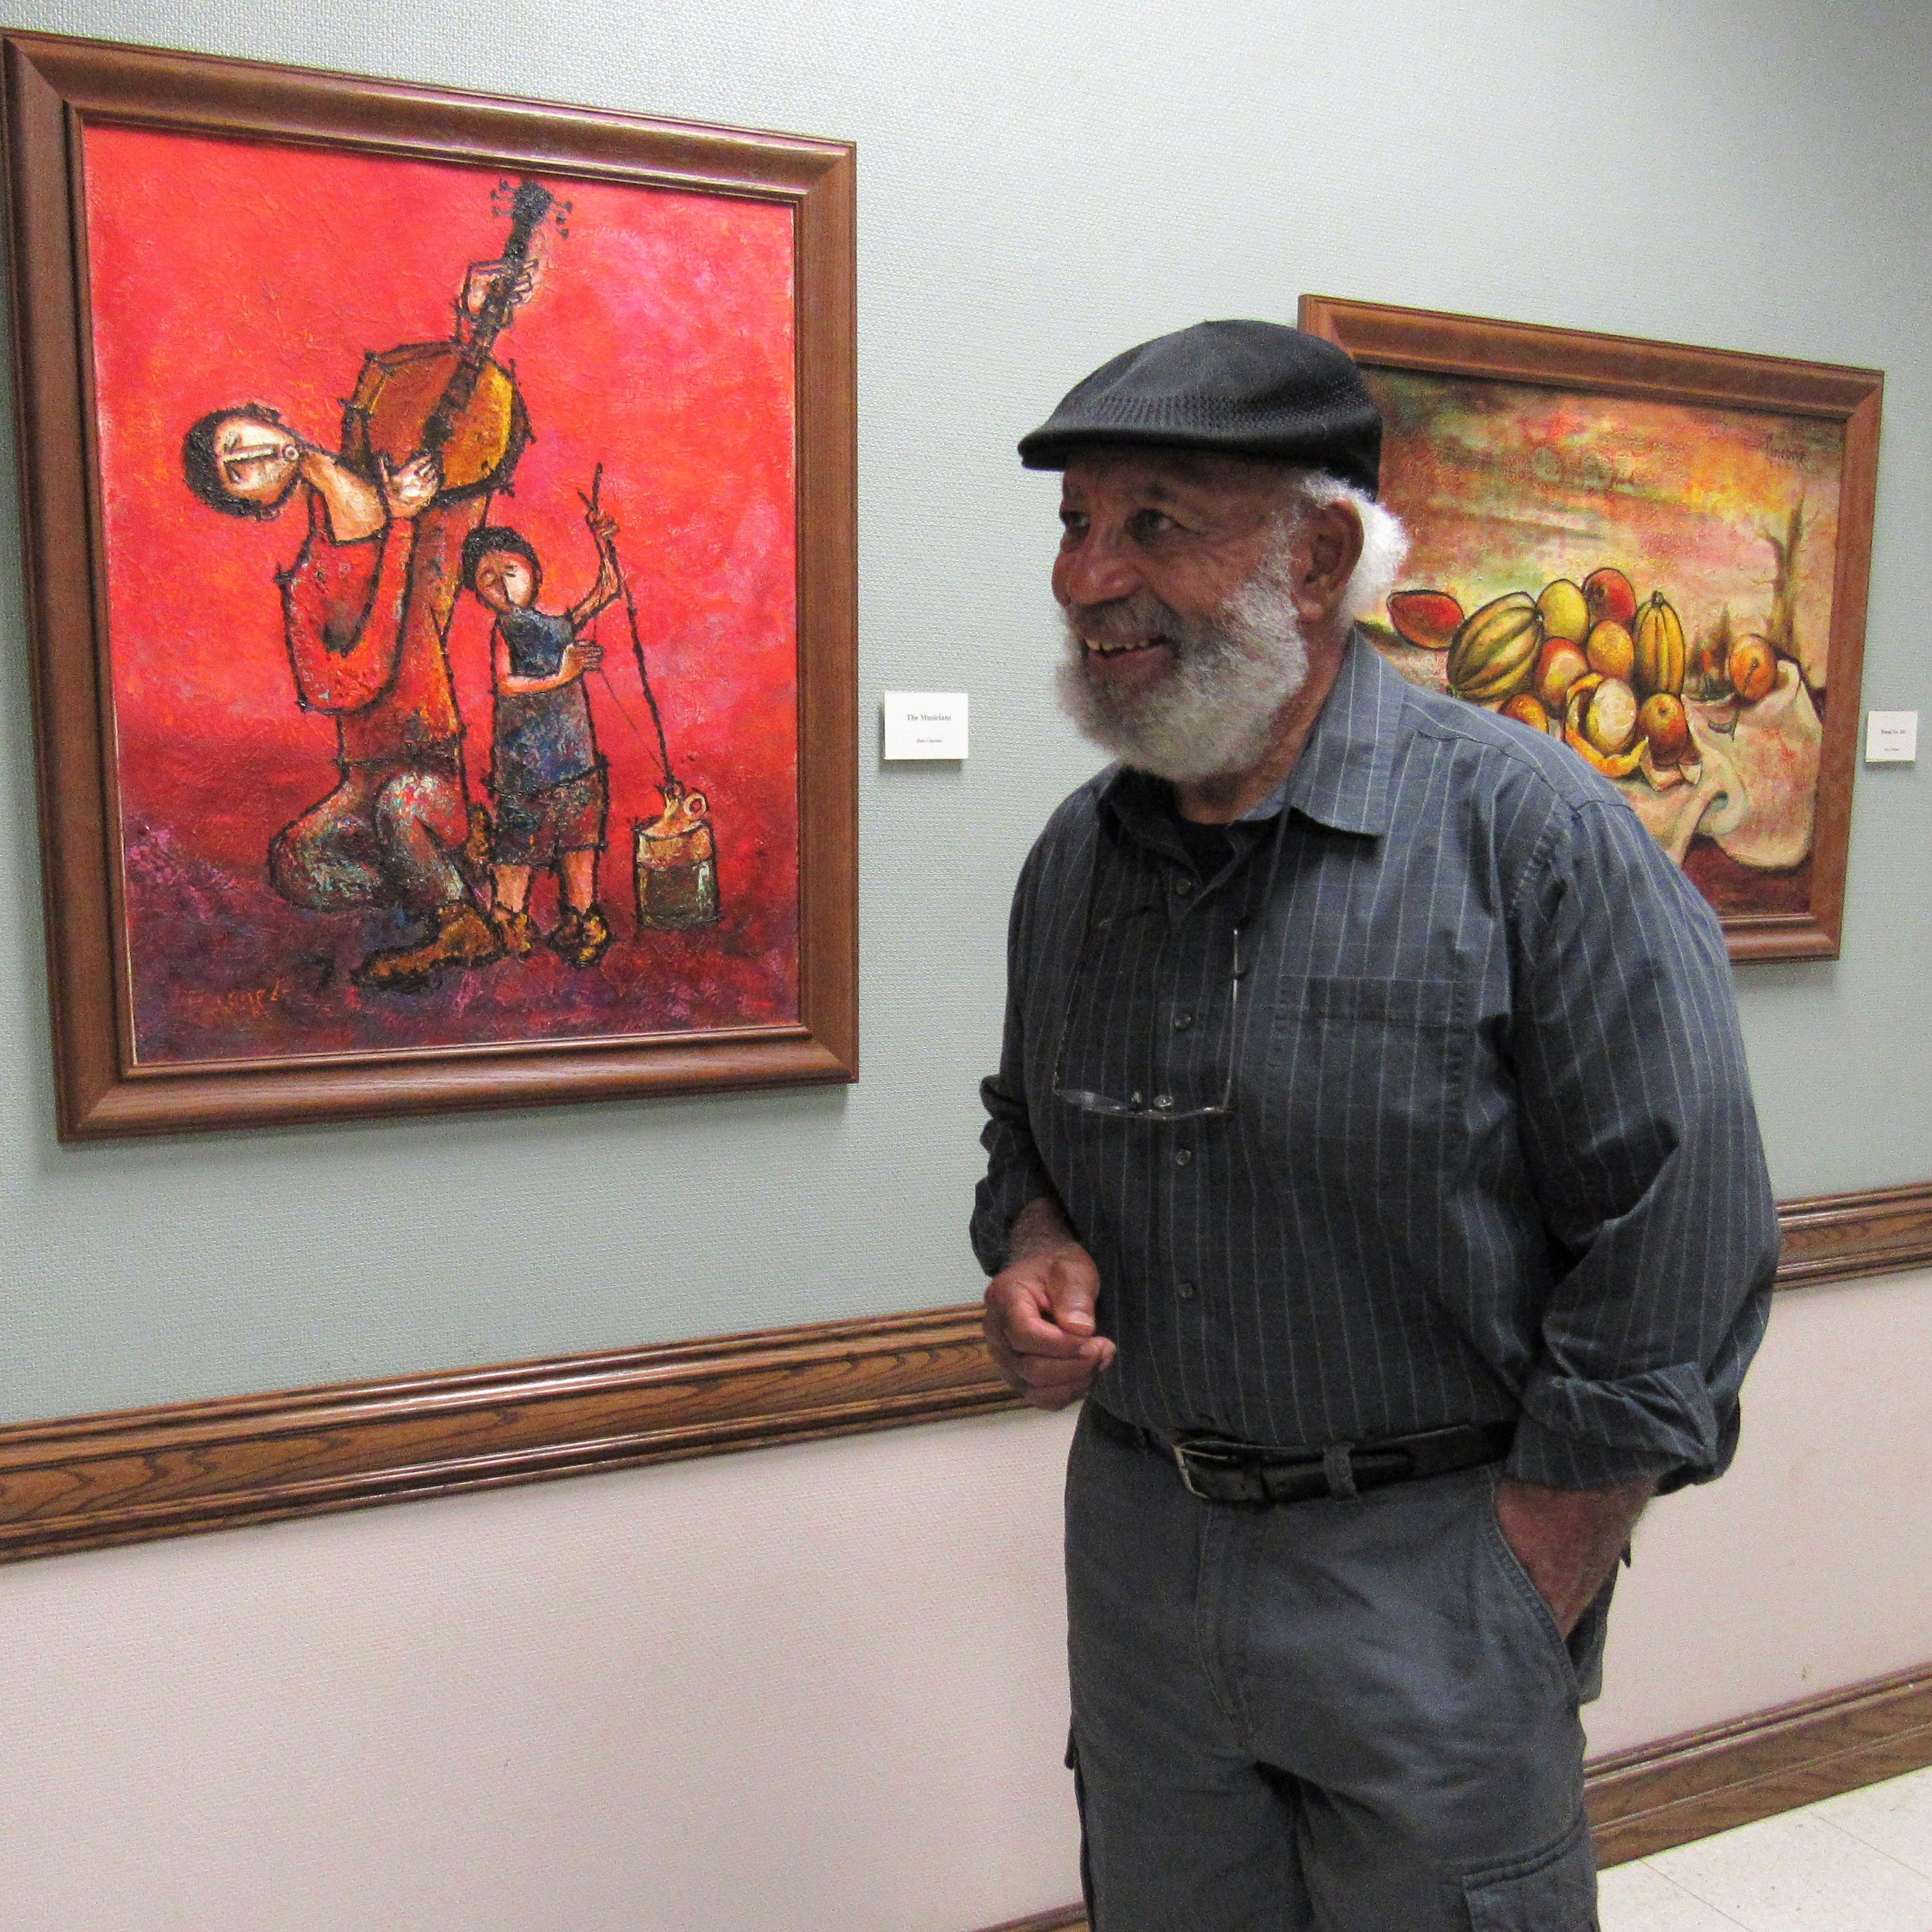 The Louisiana Endowment for the Humanities awarded a $5,000 Rebirth grant to the Arts Council of Northeast Louisiana to record an oral history of local artist Don Cincone.